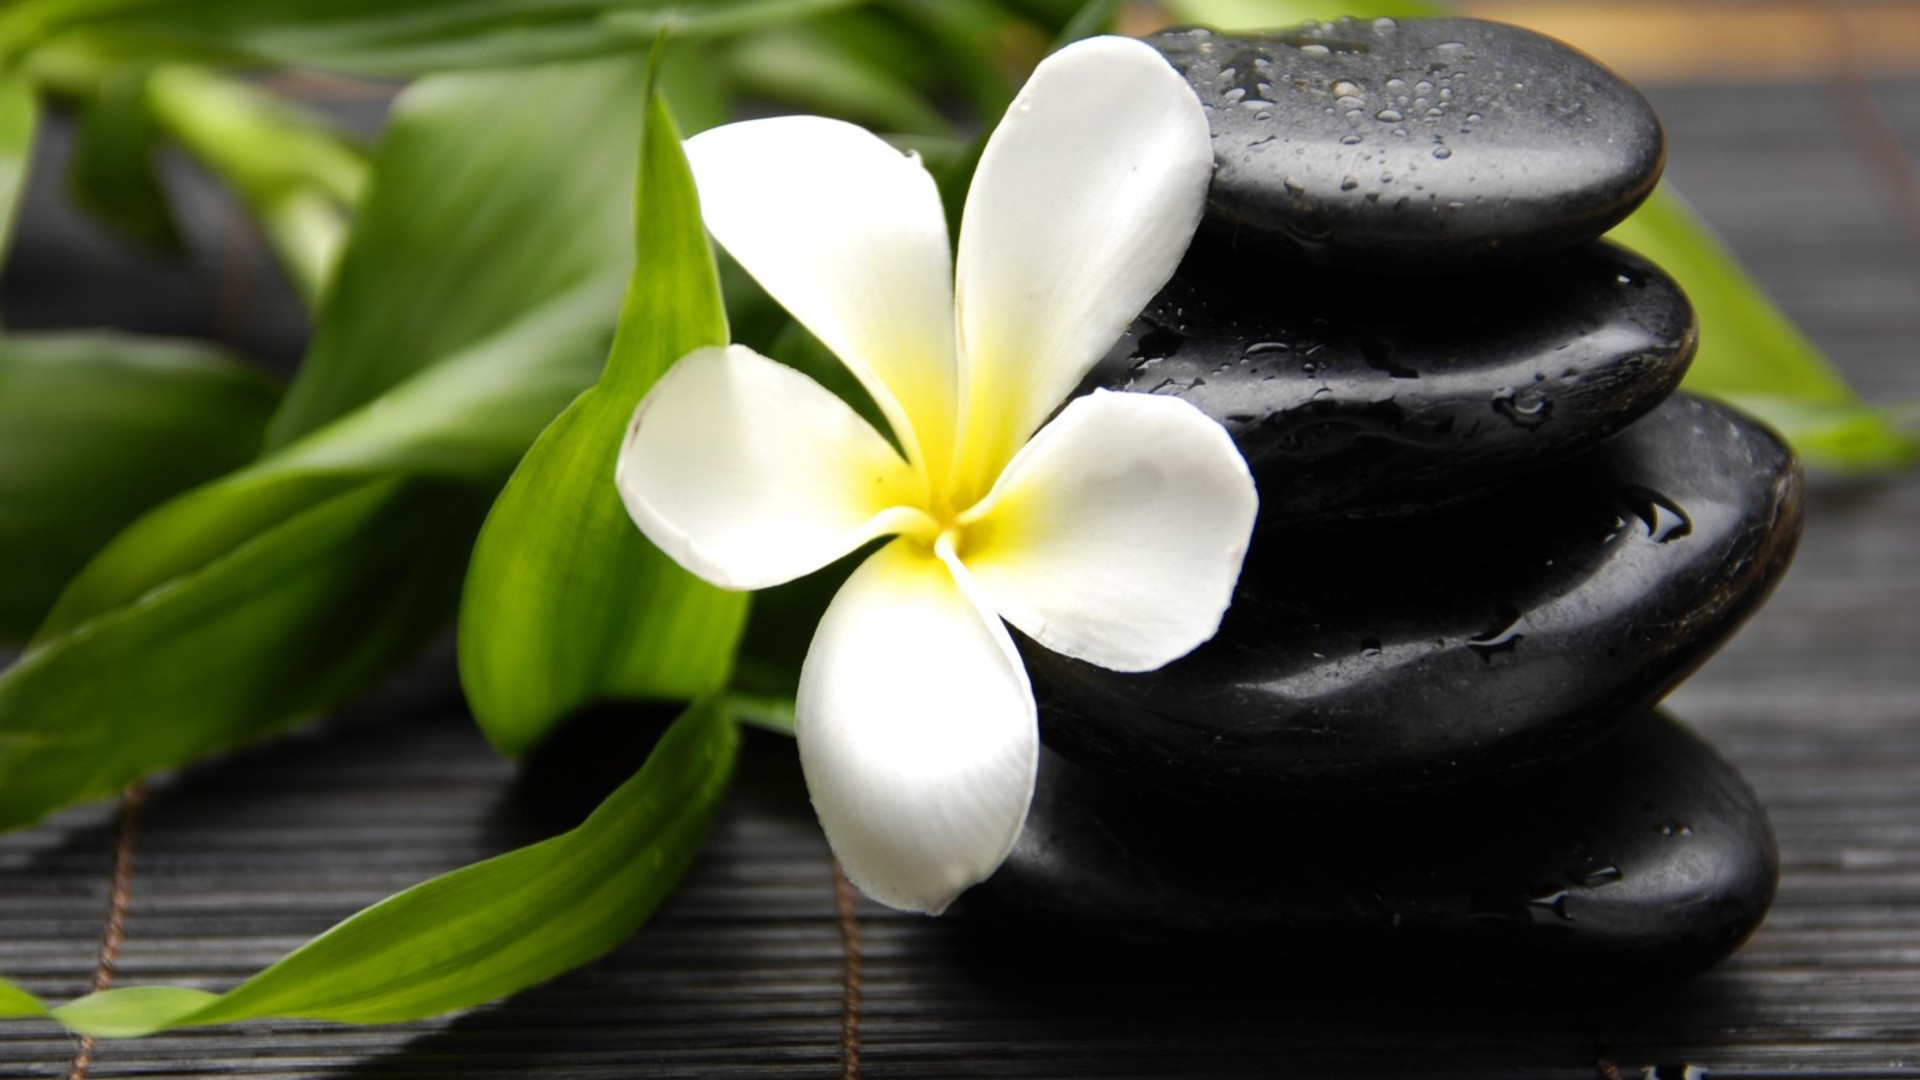 flowers leaves stones plumeria wallpaper allwallpaperin